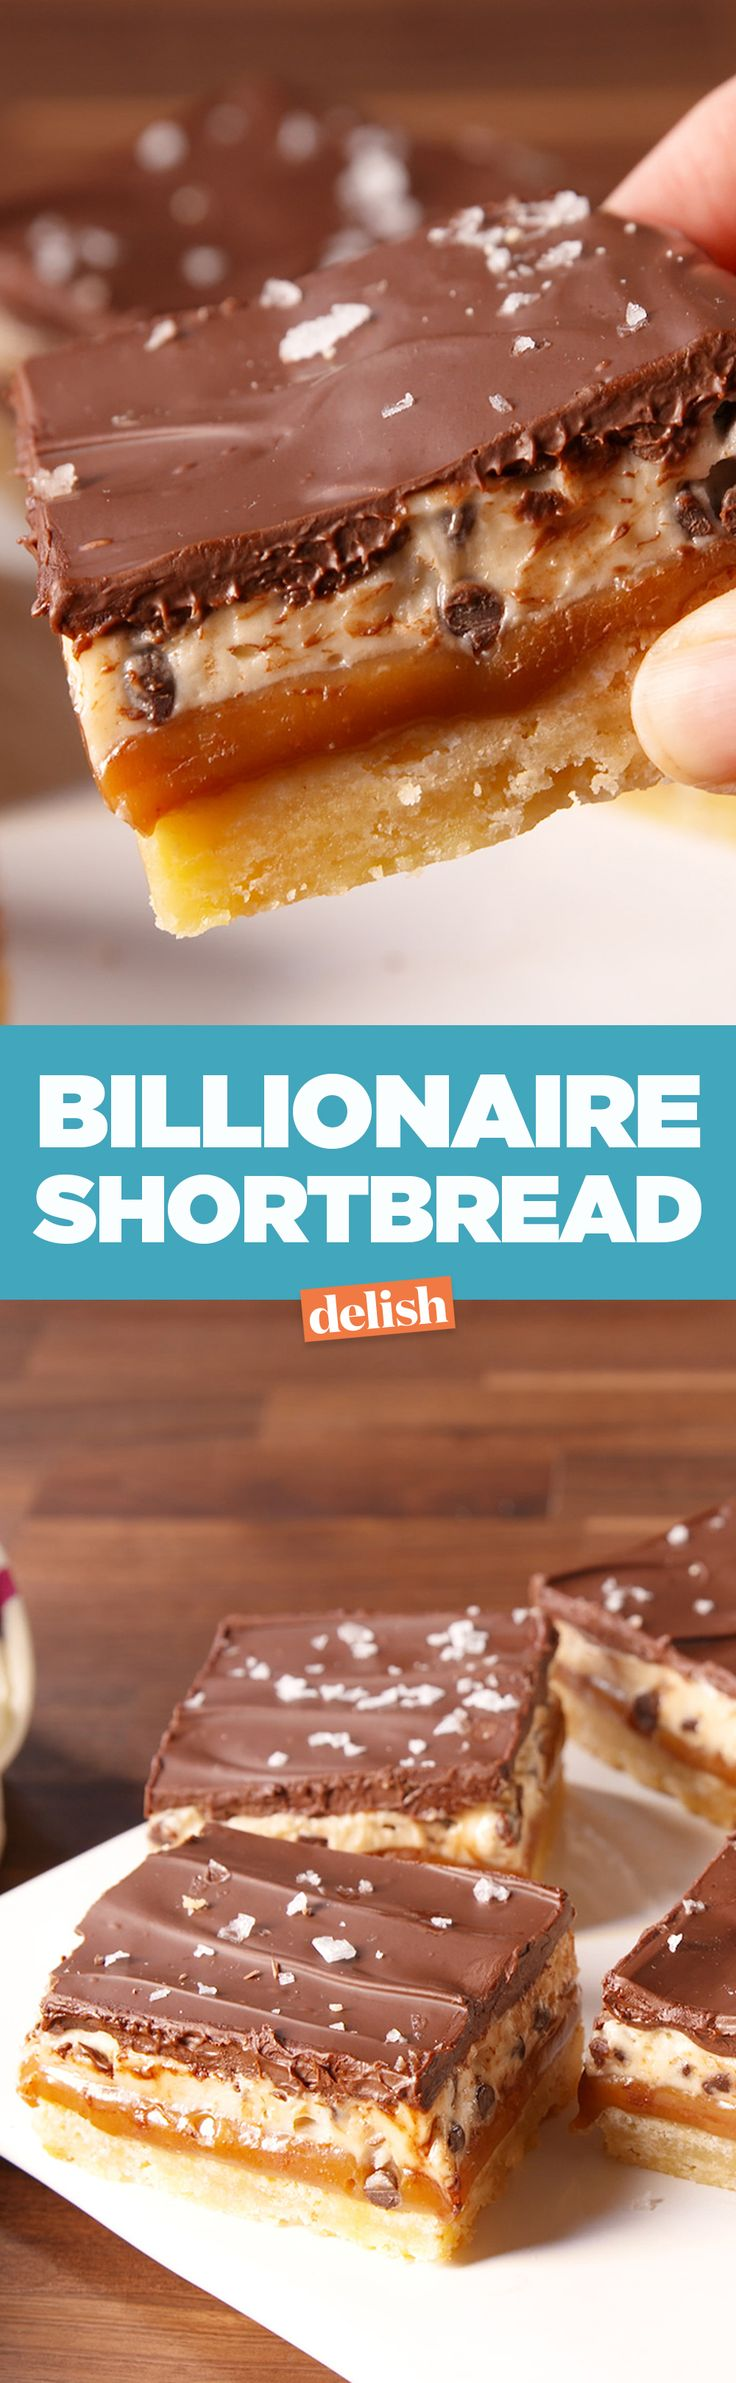 This billionaire shortbread tastes rich, seriously. Get the recipe on Delish.com.